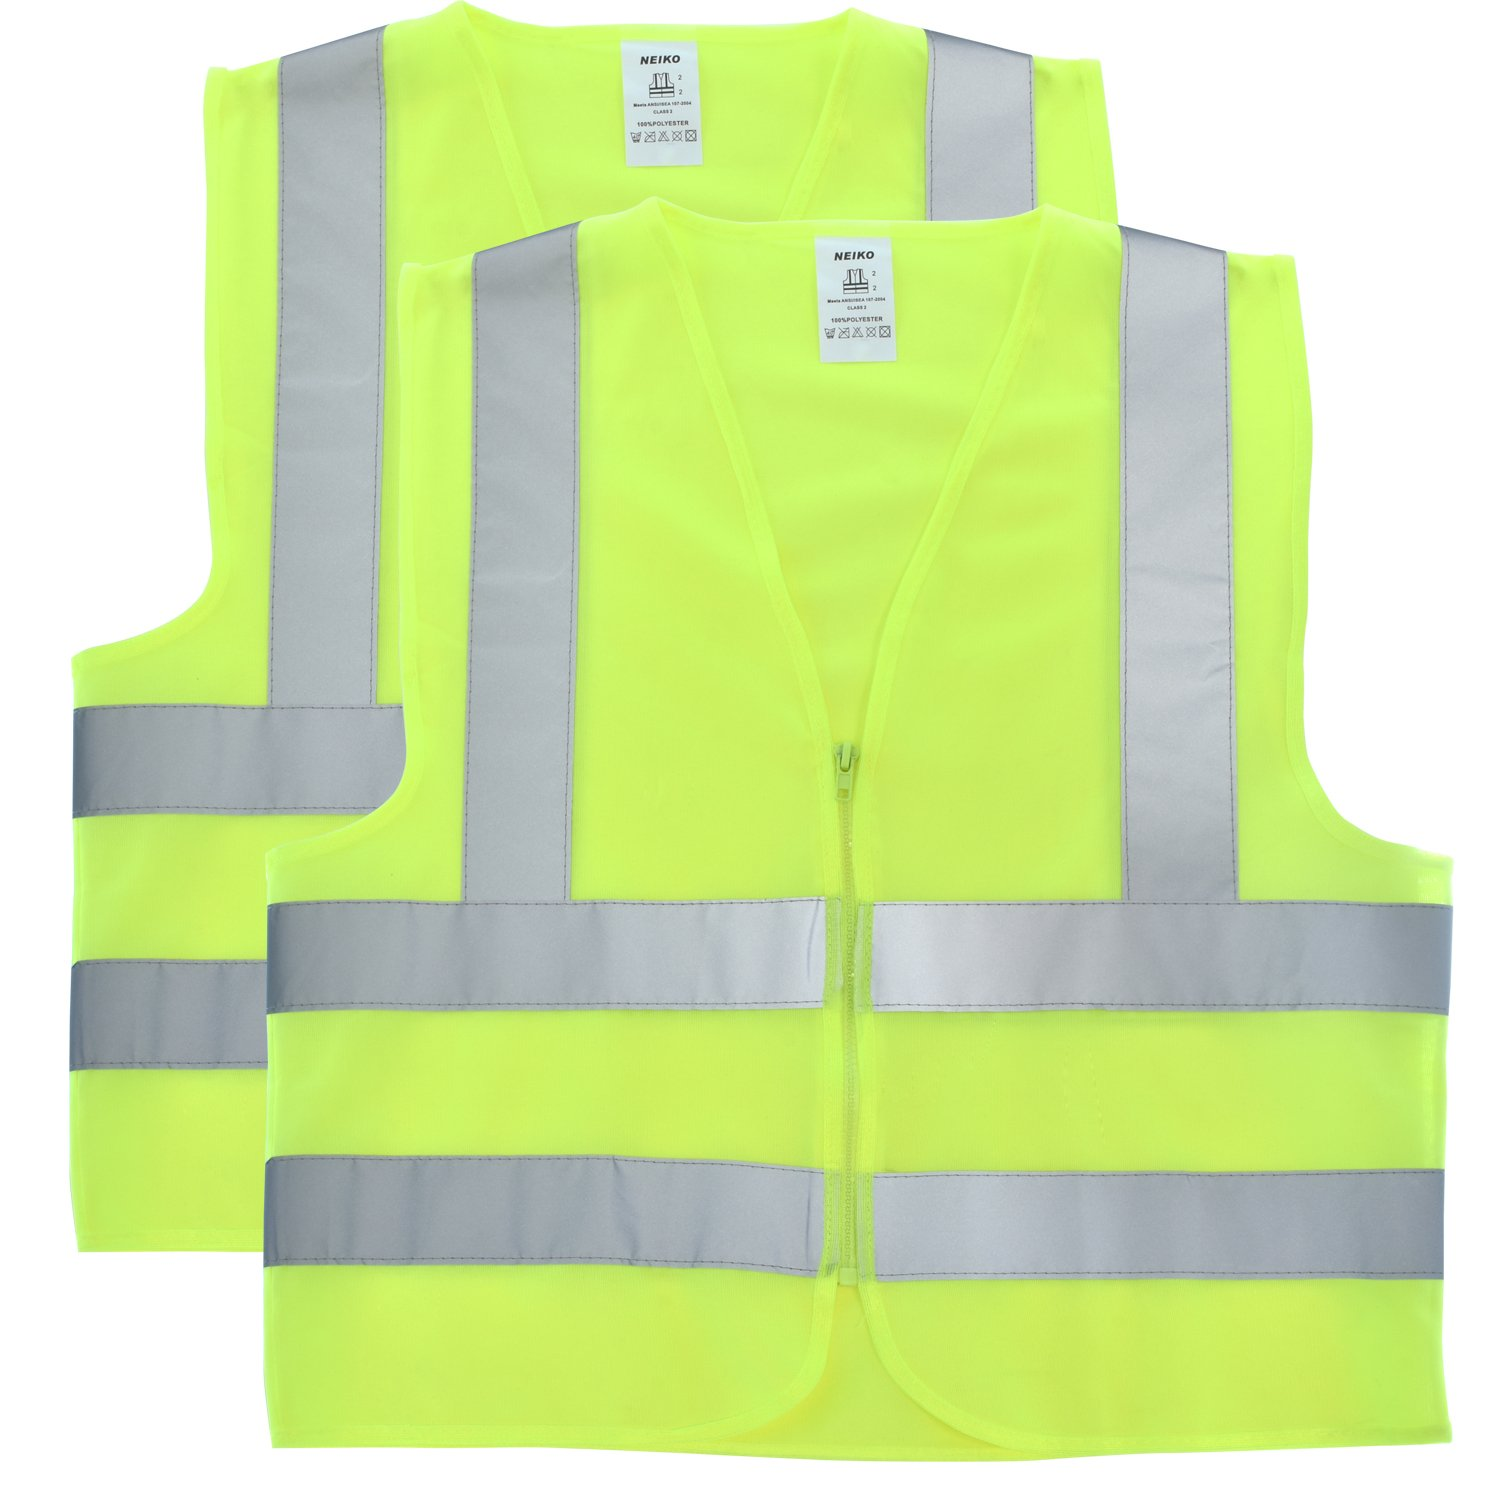 Neiko 53949A Safety Vest Front Zipper, High Visibility Neon Yellow | ANSI/SEA Standard - Size XXXL | 2 Pack